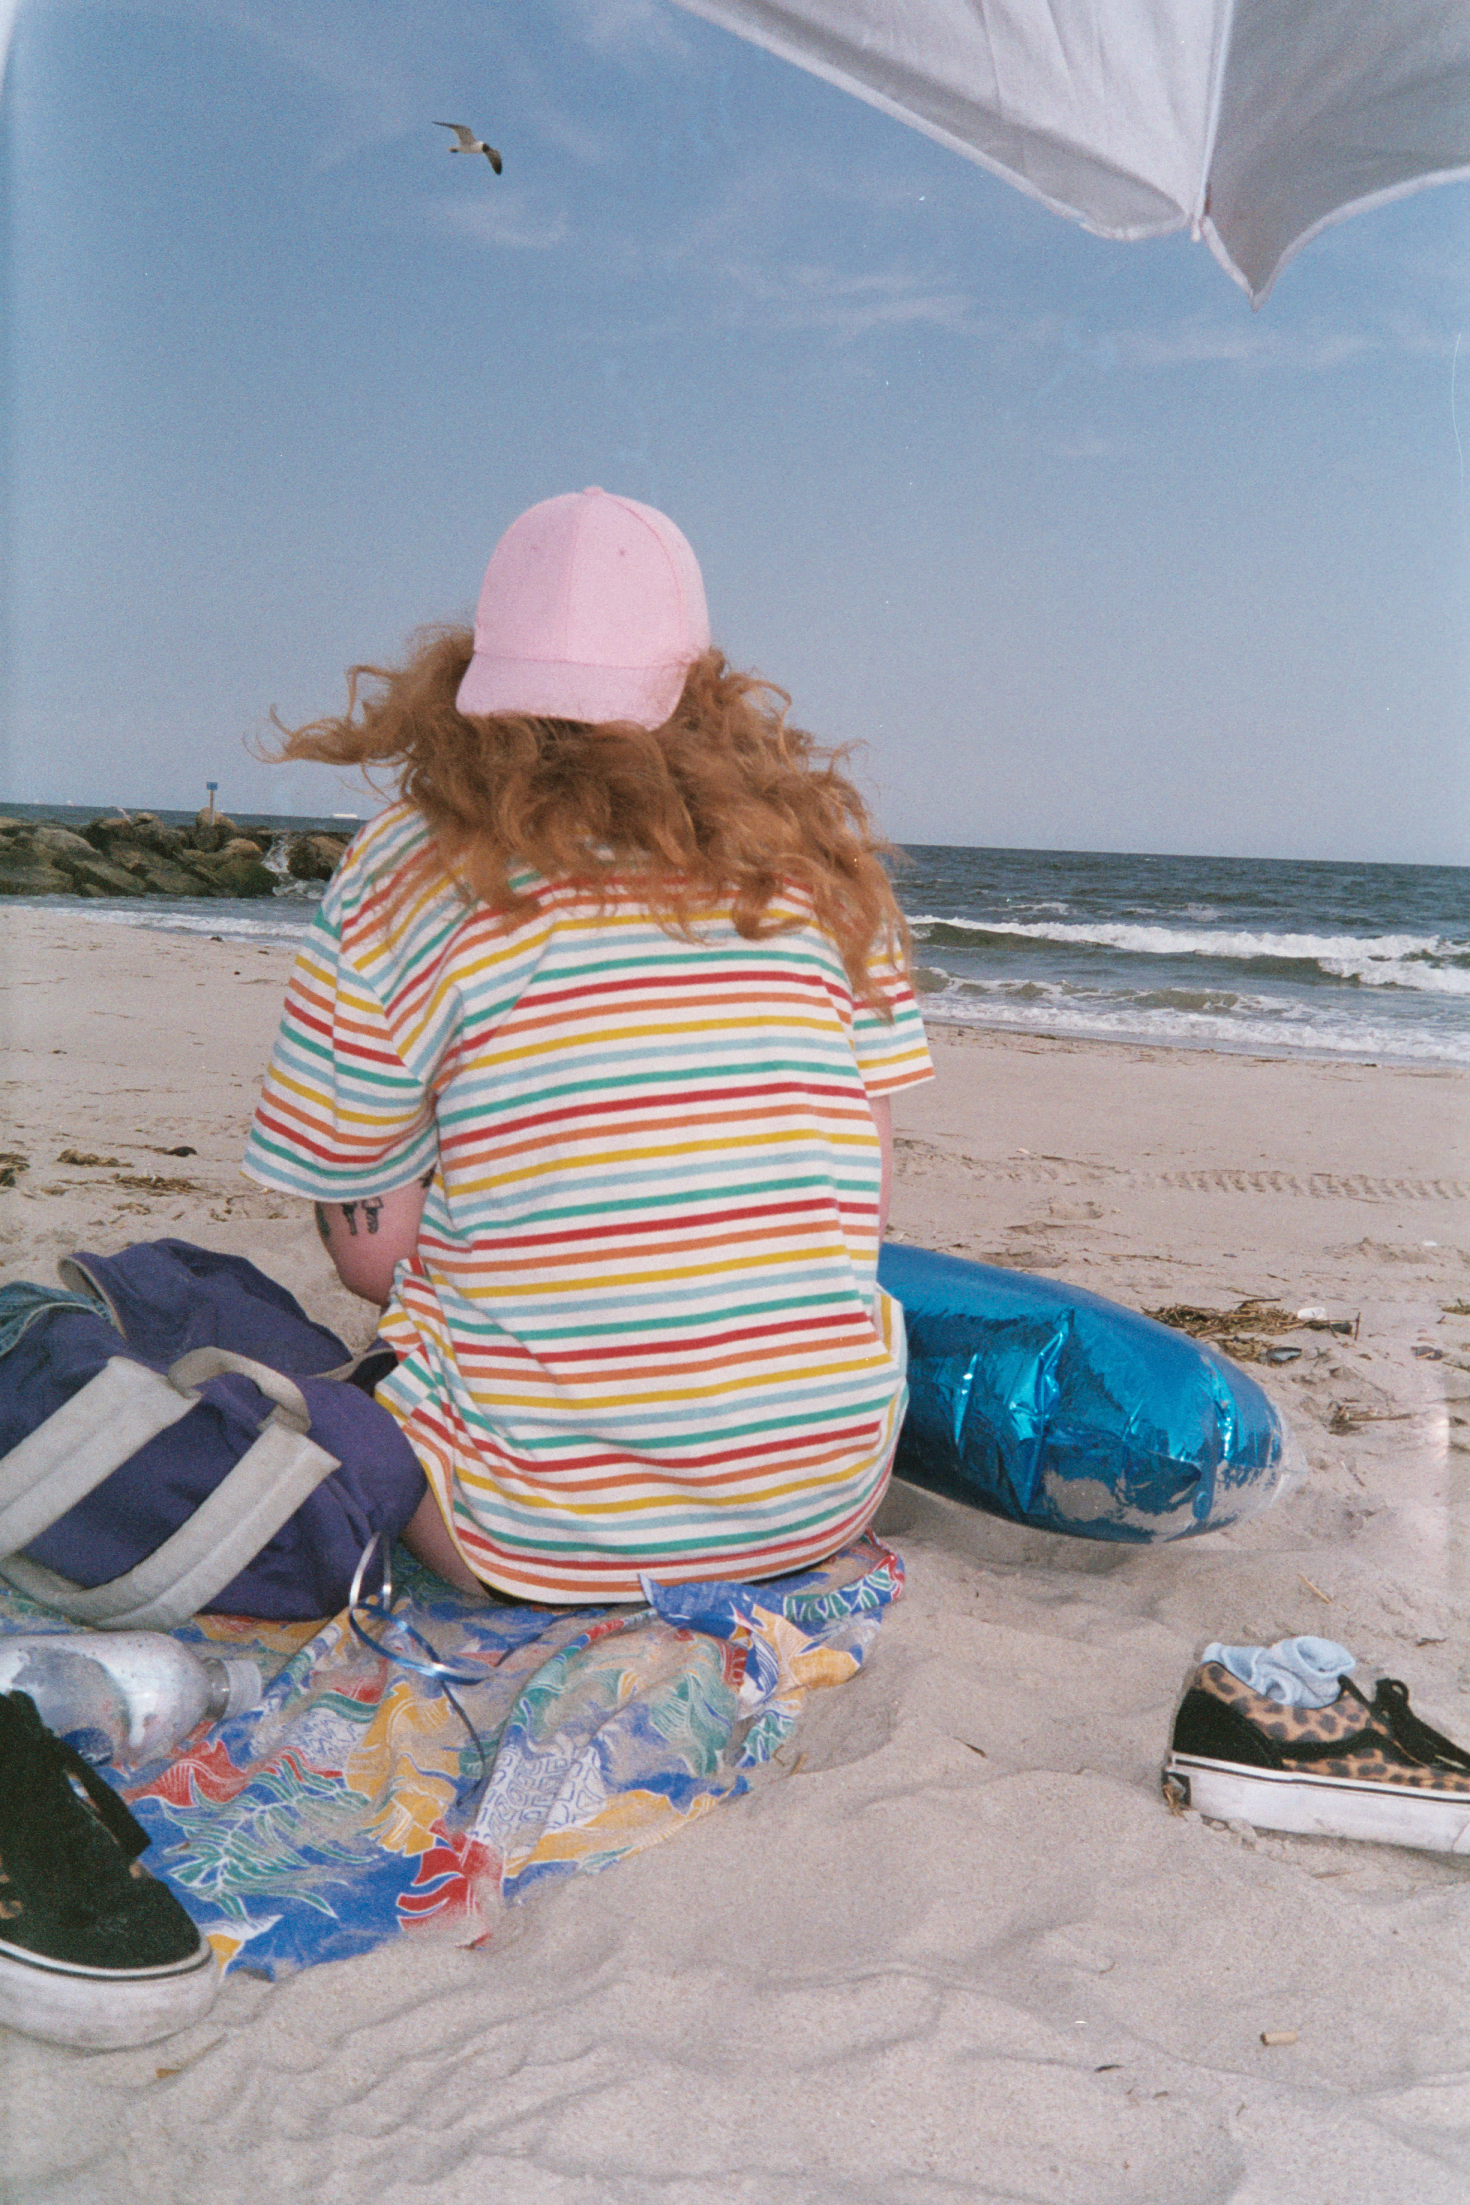 Caroline, Rockaway Beach, New York